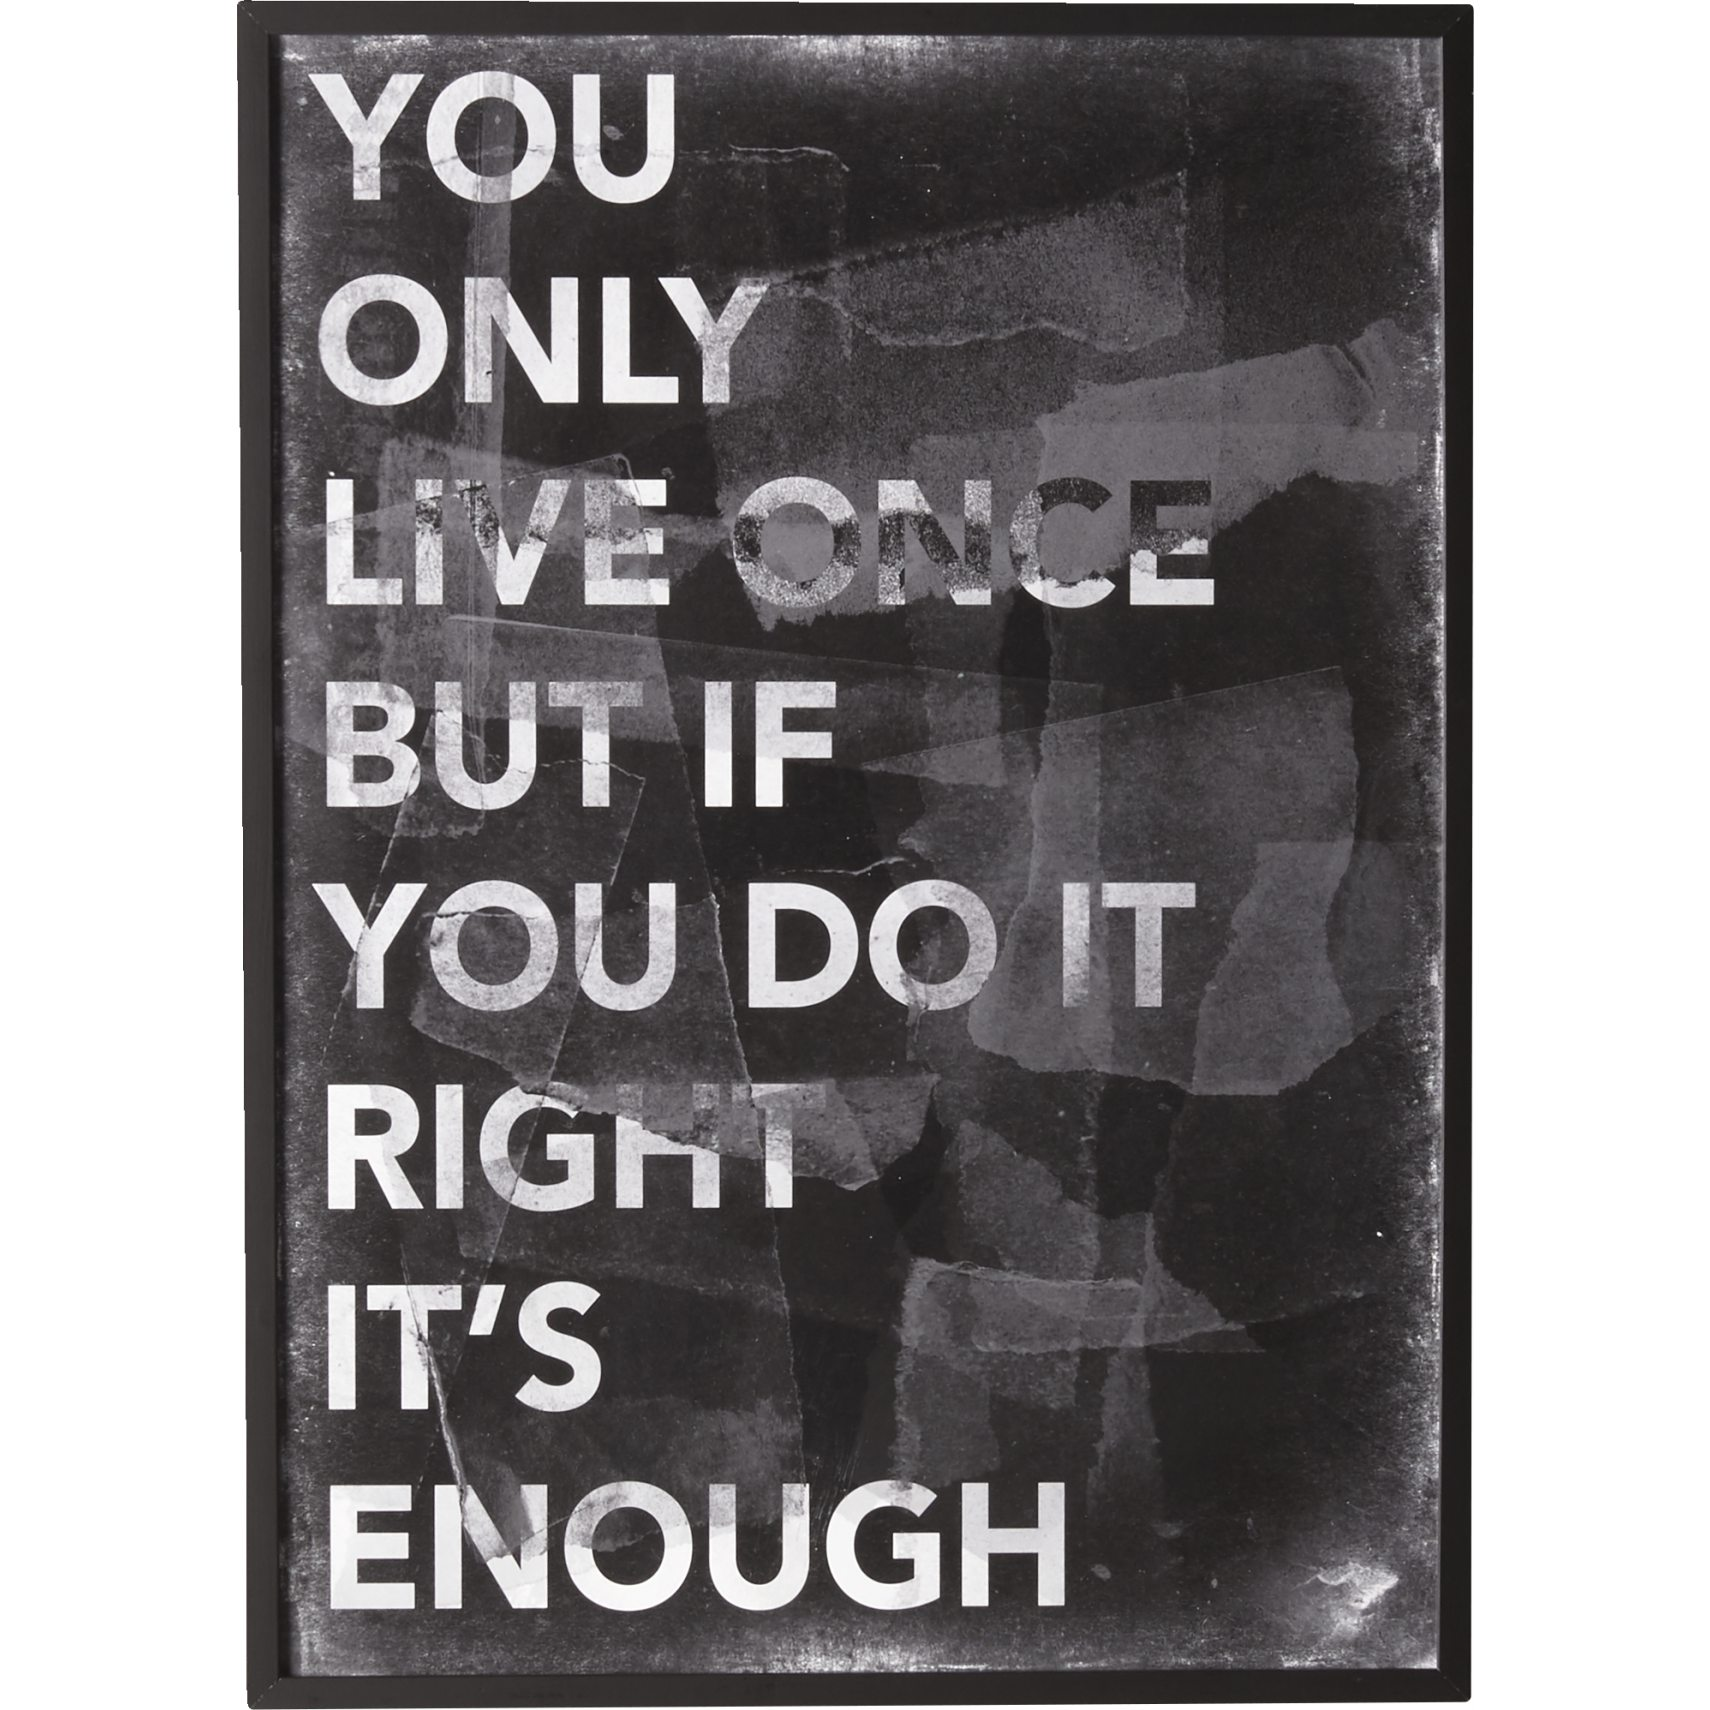 You Only Live Once Plakat 50 x 70 cm -